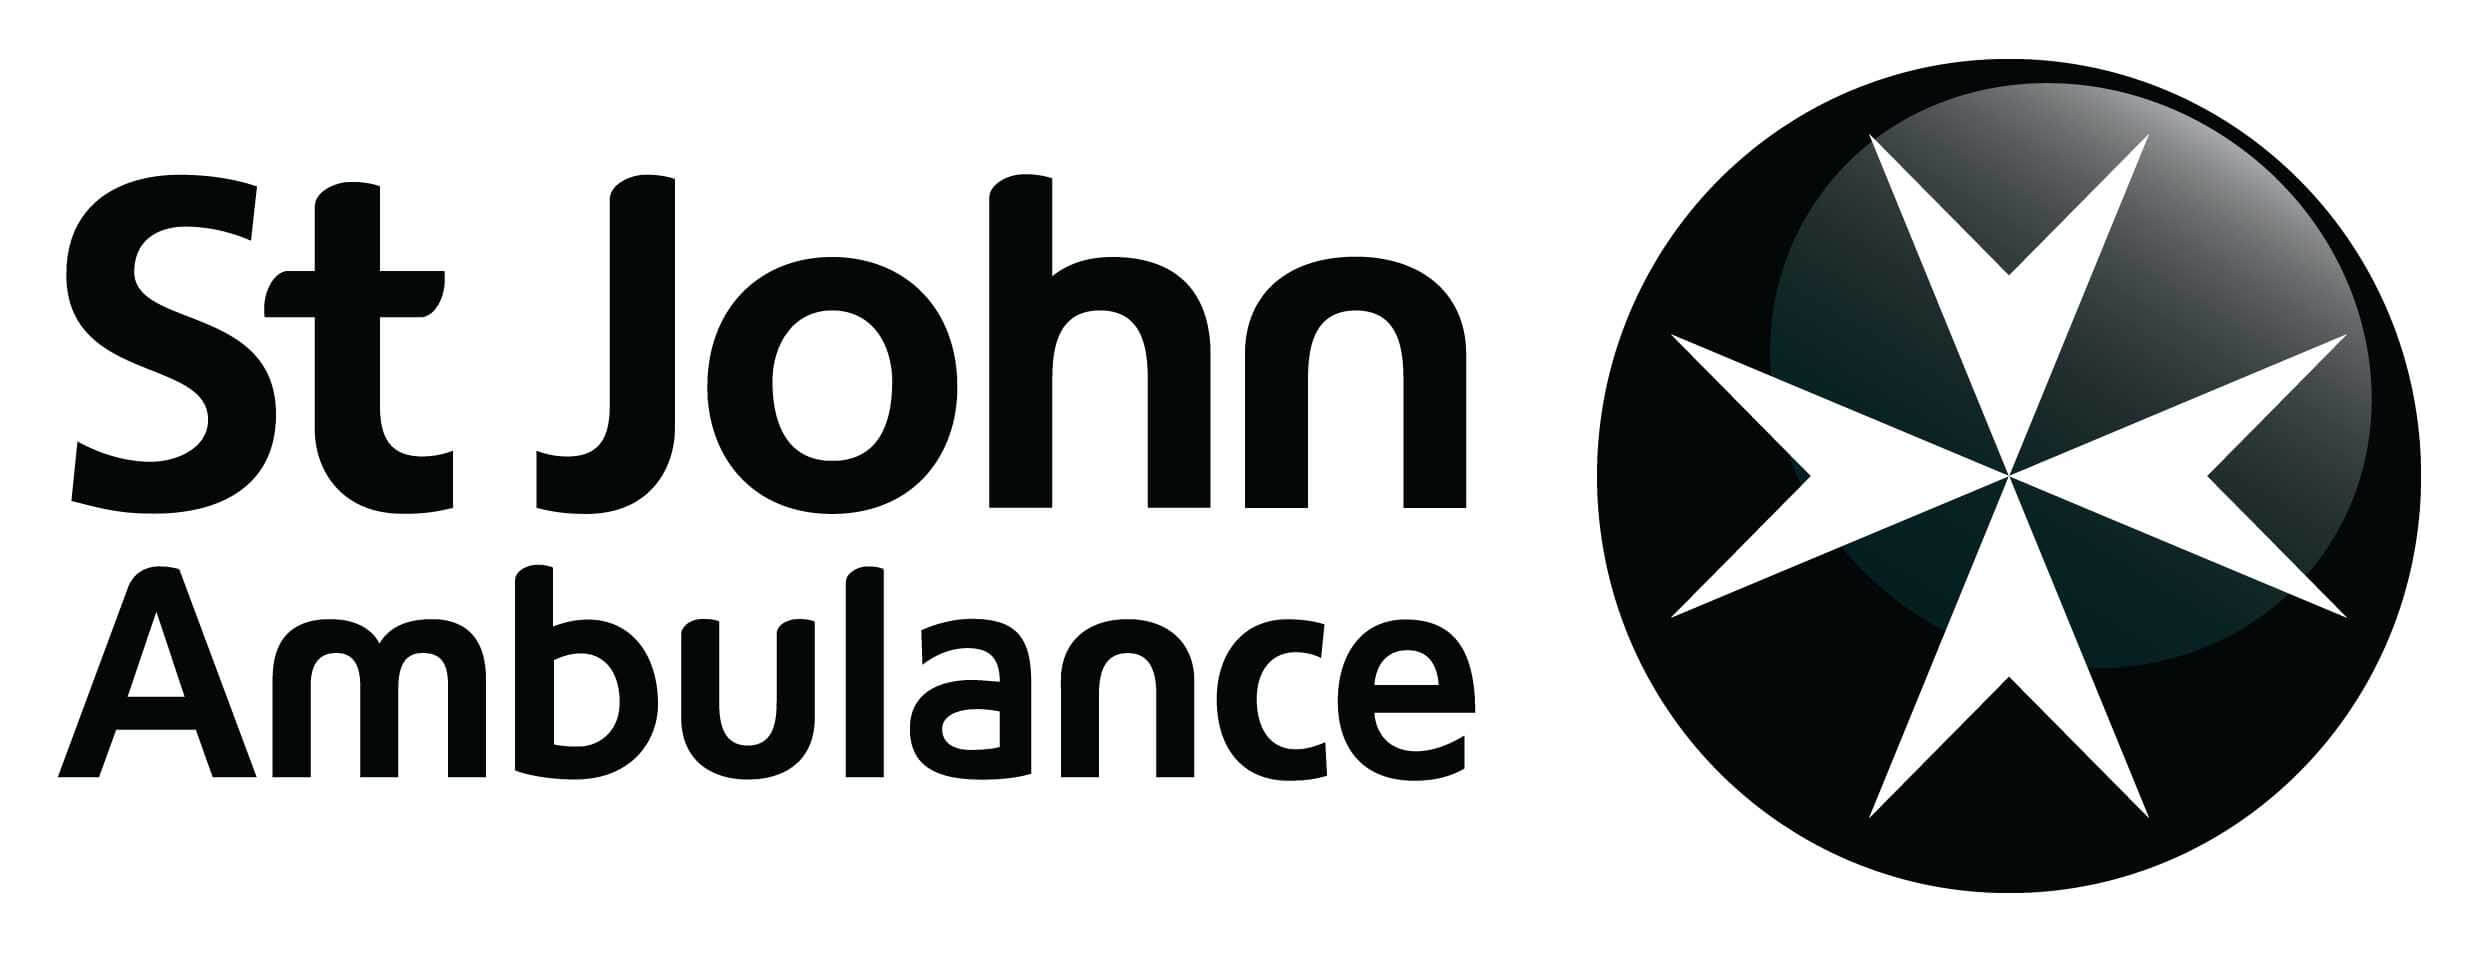 St John Ambulance - Office 365 Proof of Concept